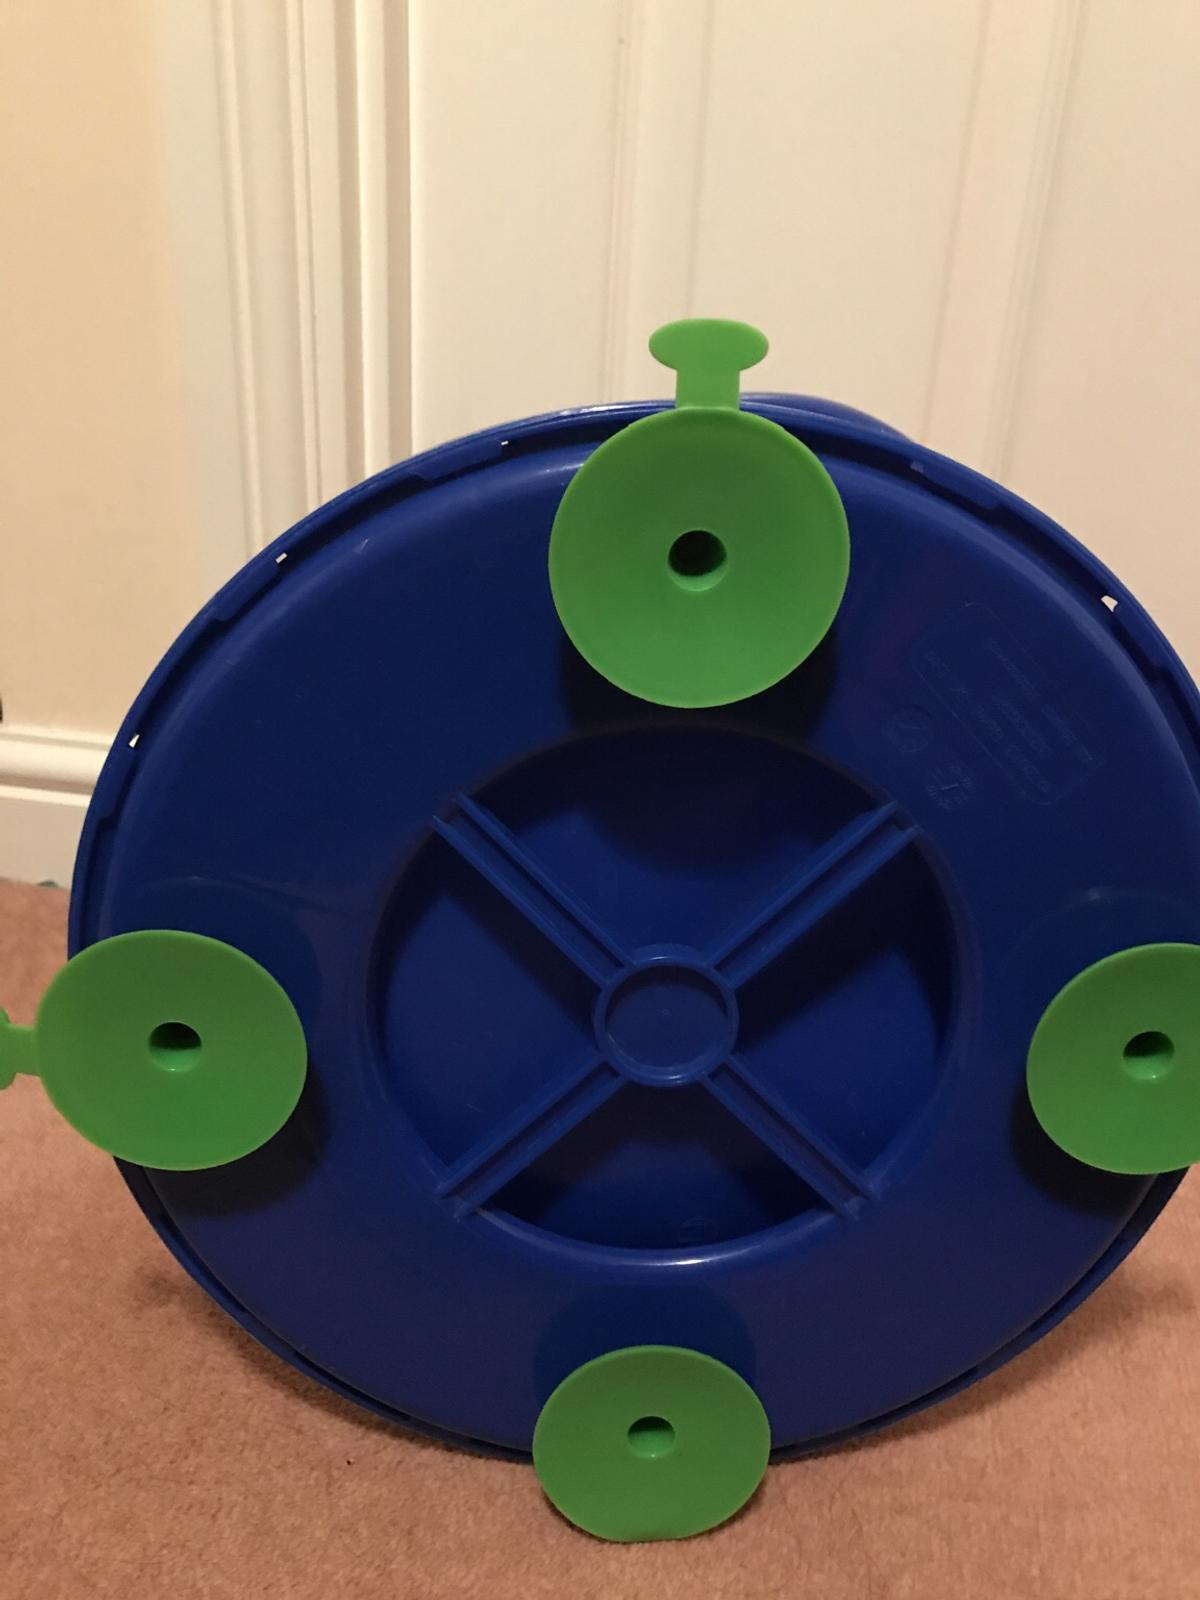 33e1e012bfd Baby bath seat in NG5 Nottingham for £10.00 for sale - Shpock